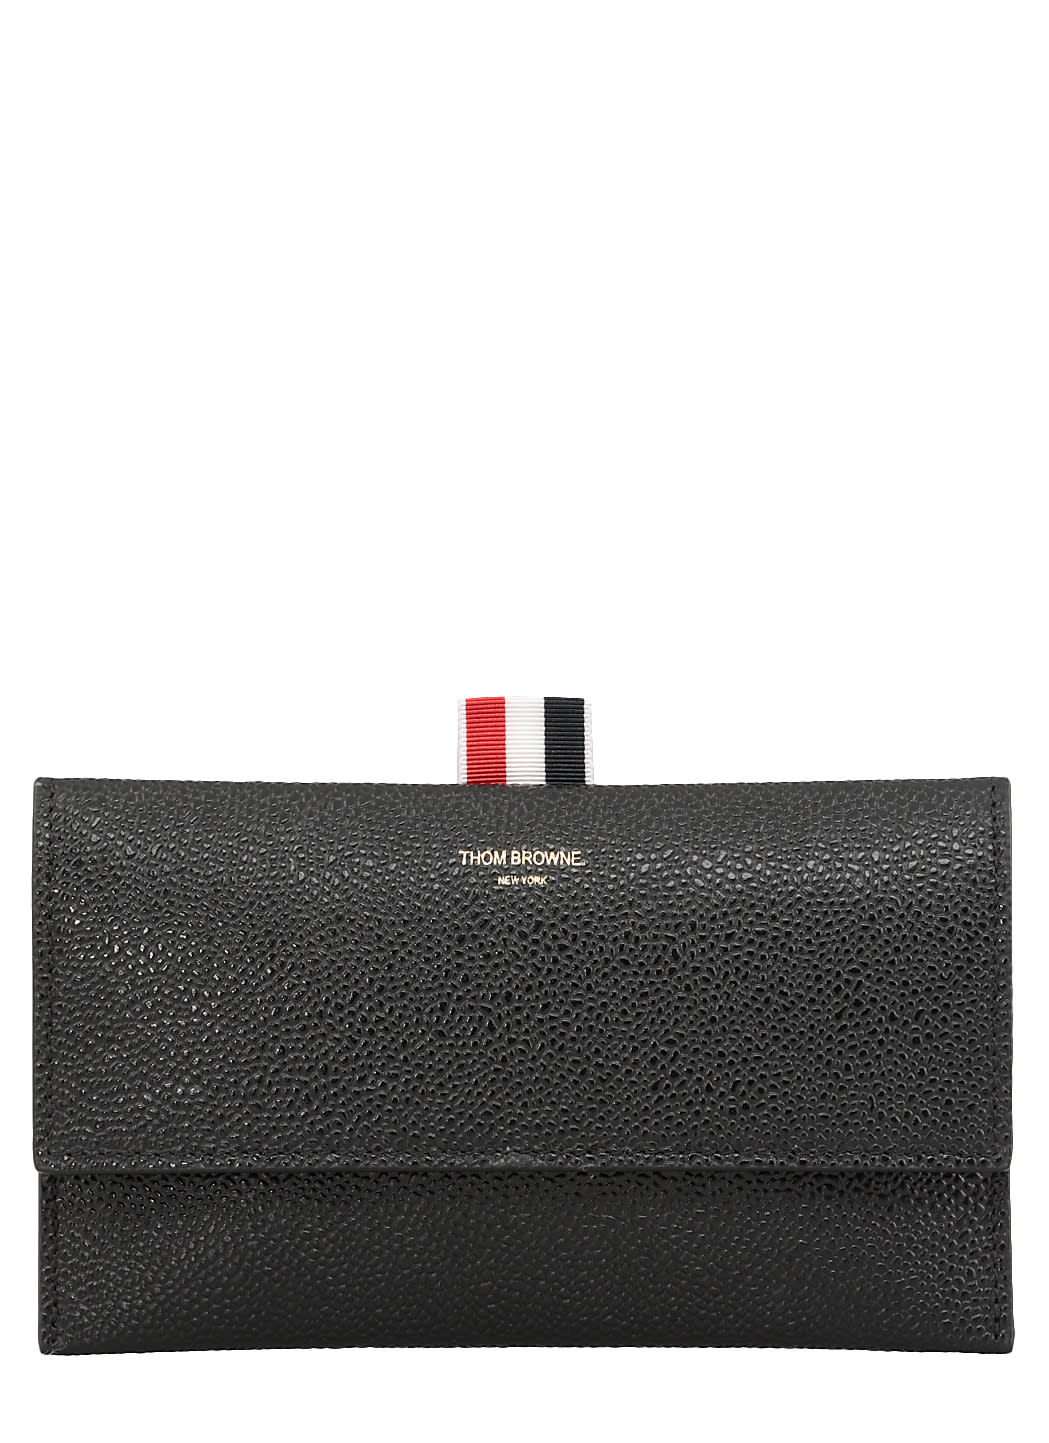 Thom Browne Leather Document Holder